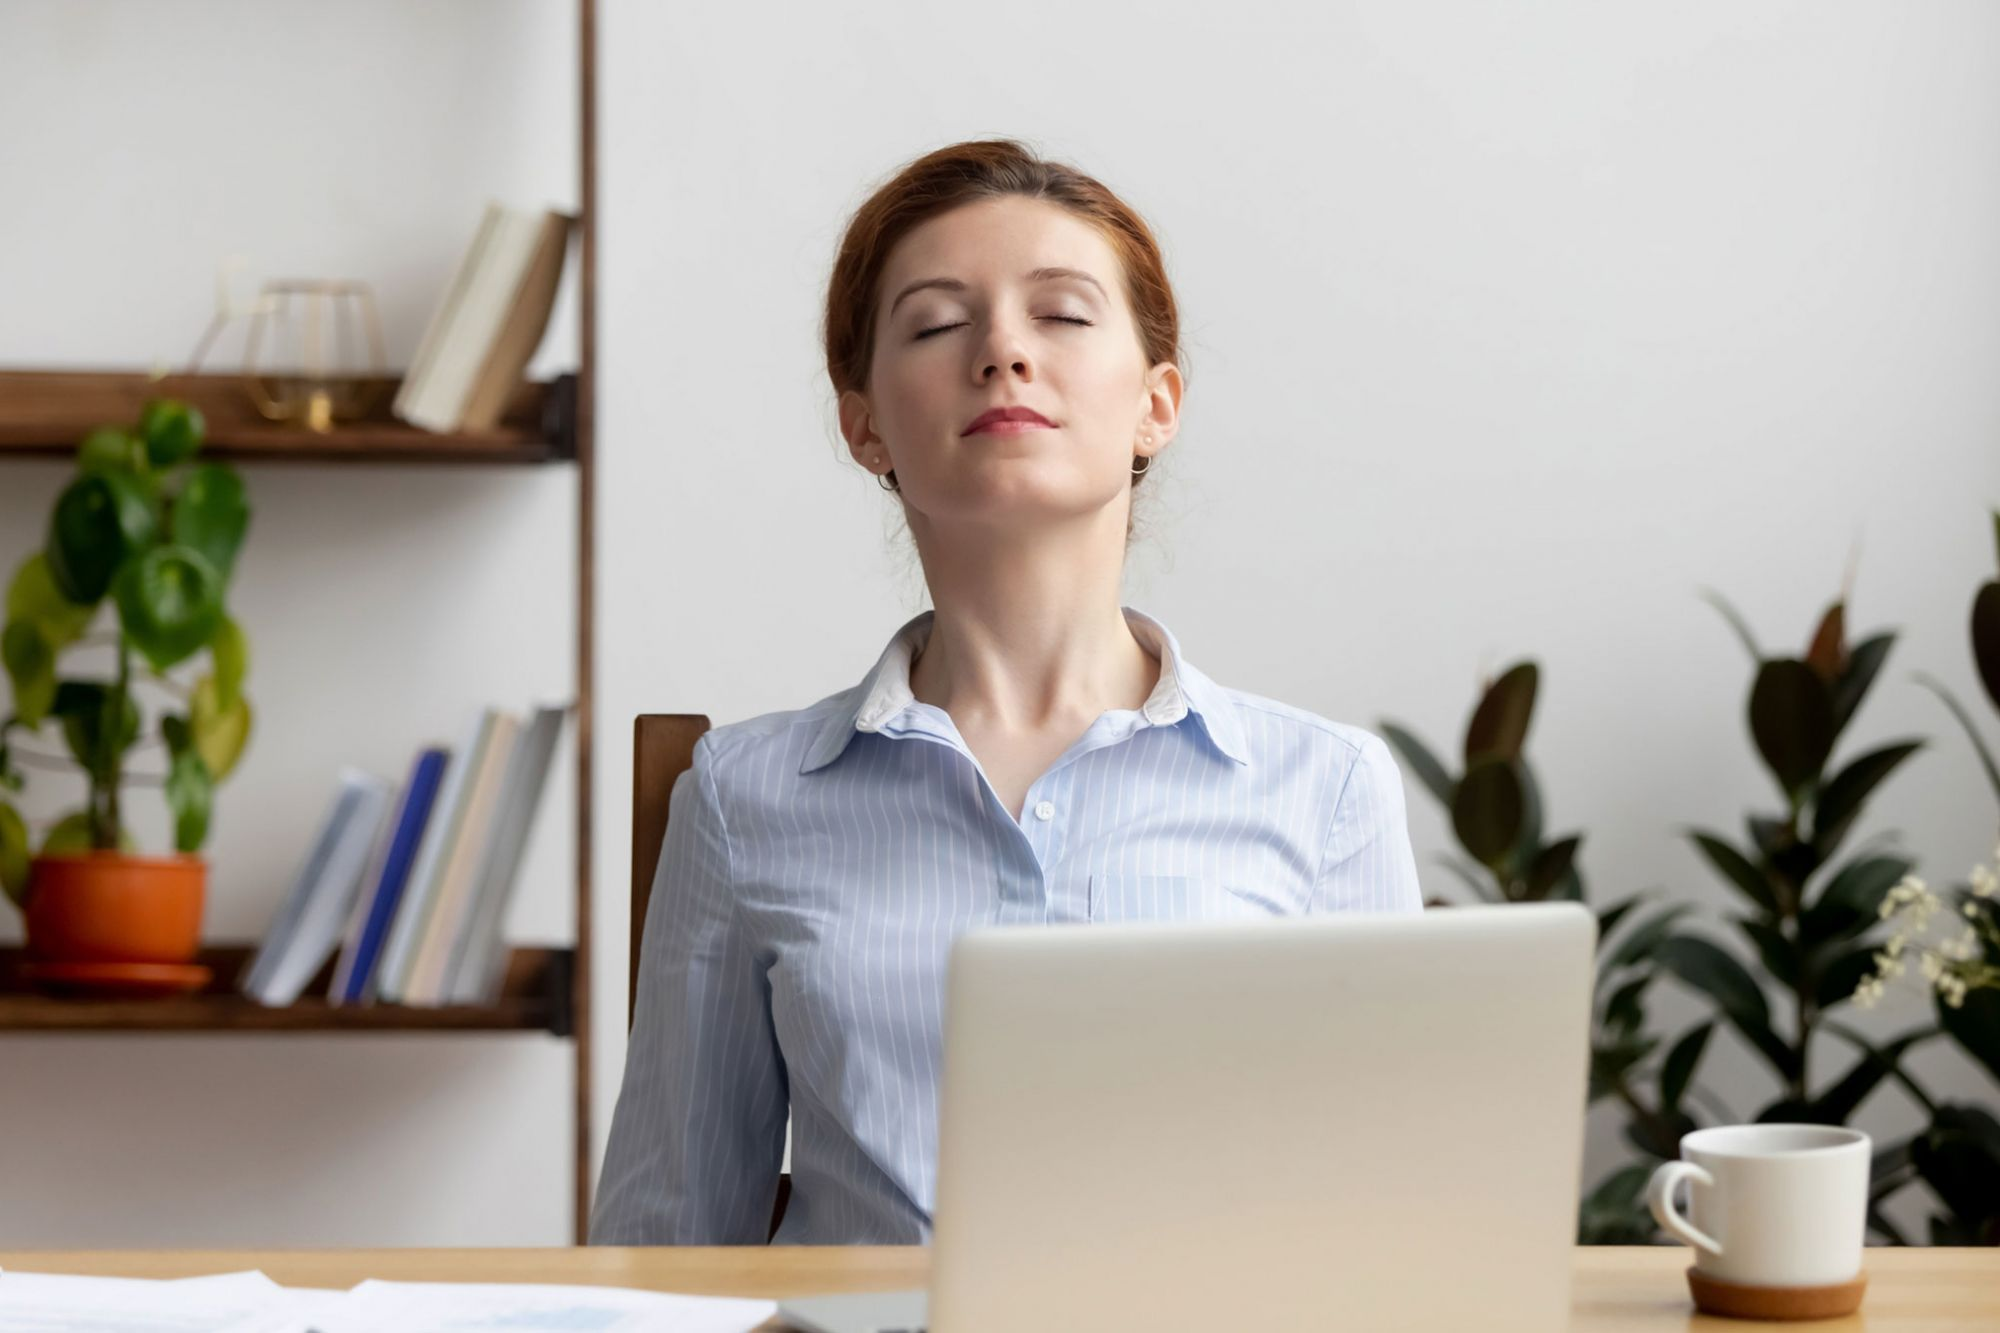 How to Find the Right Career Calling and Reduce Stress